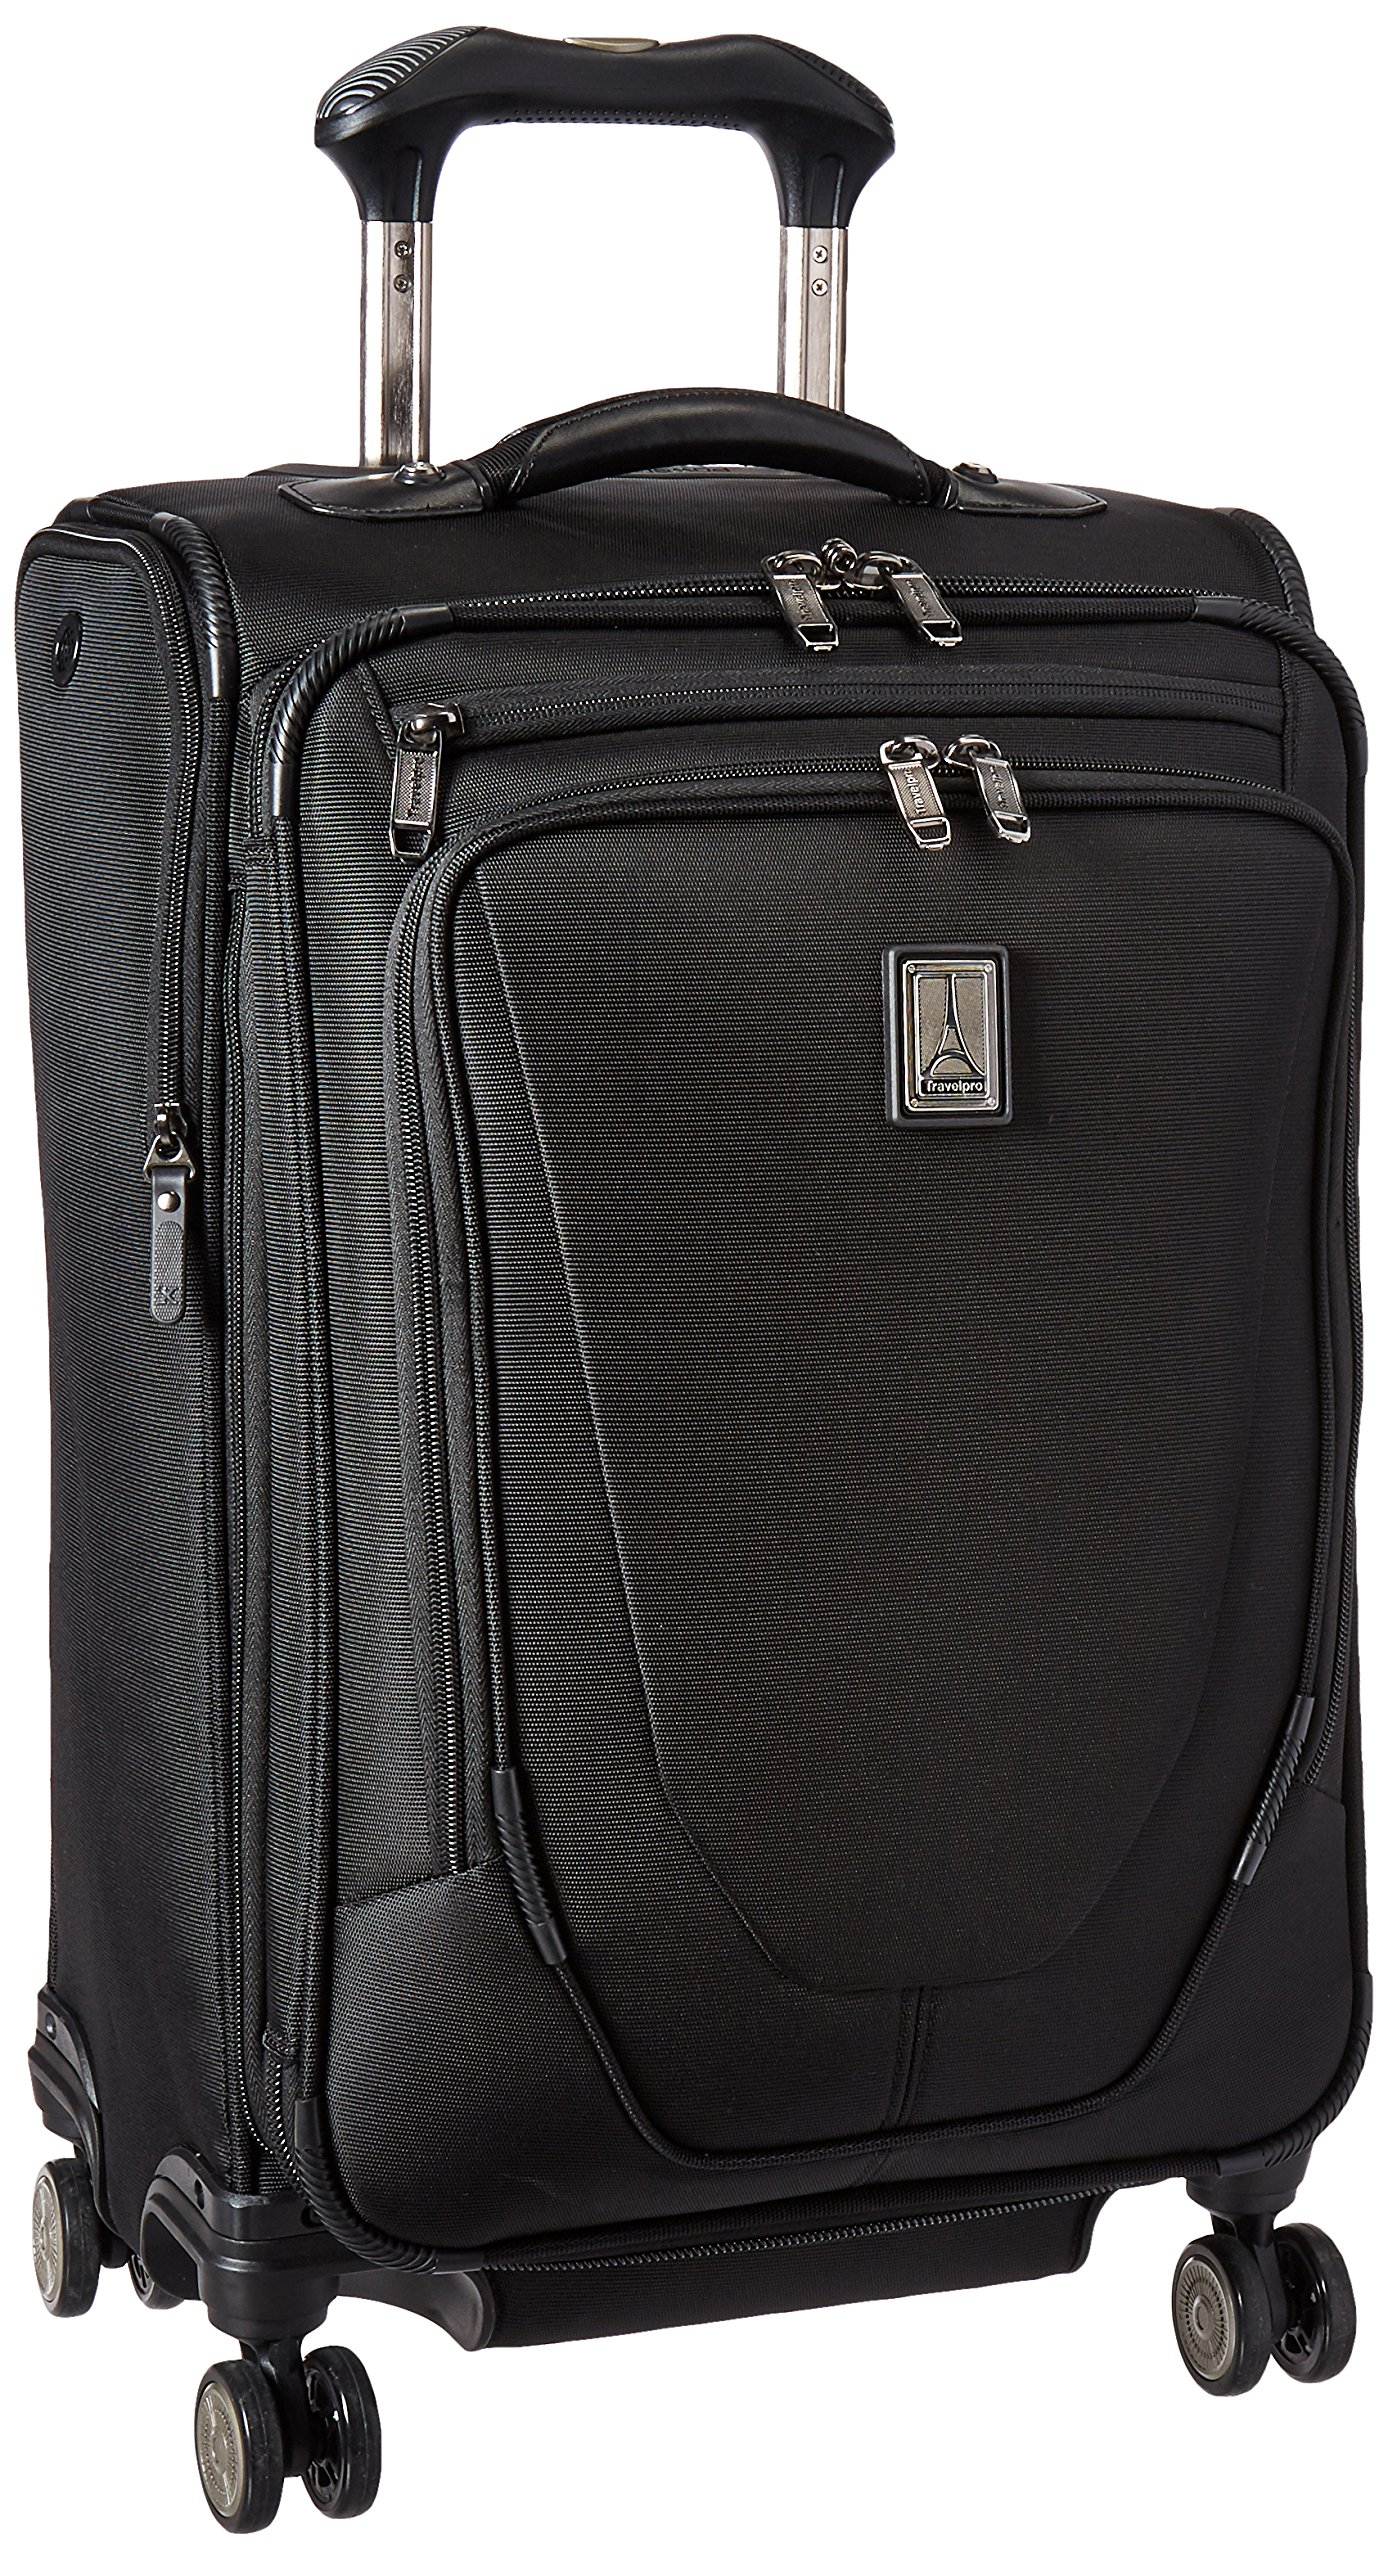 Travelpro Crew 11 21'' Expandable Spinner Carry-on Suiter Suitcase, Black